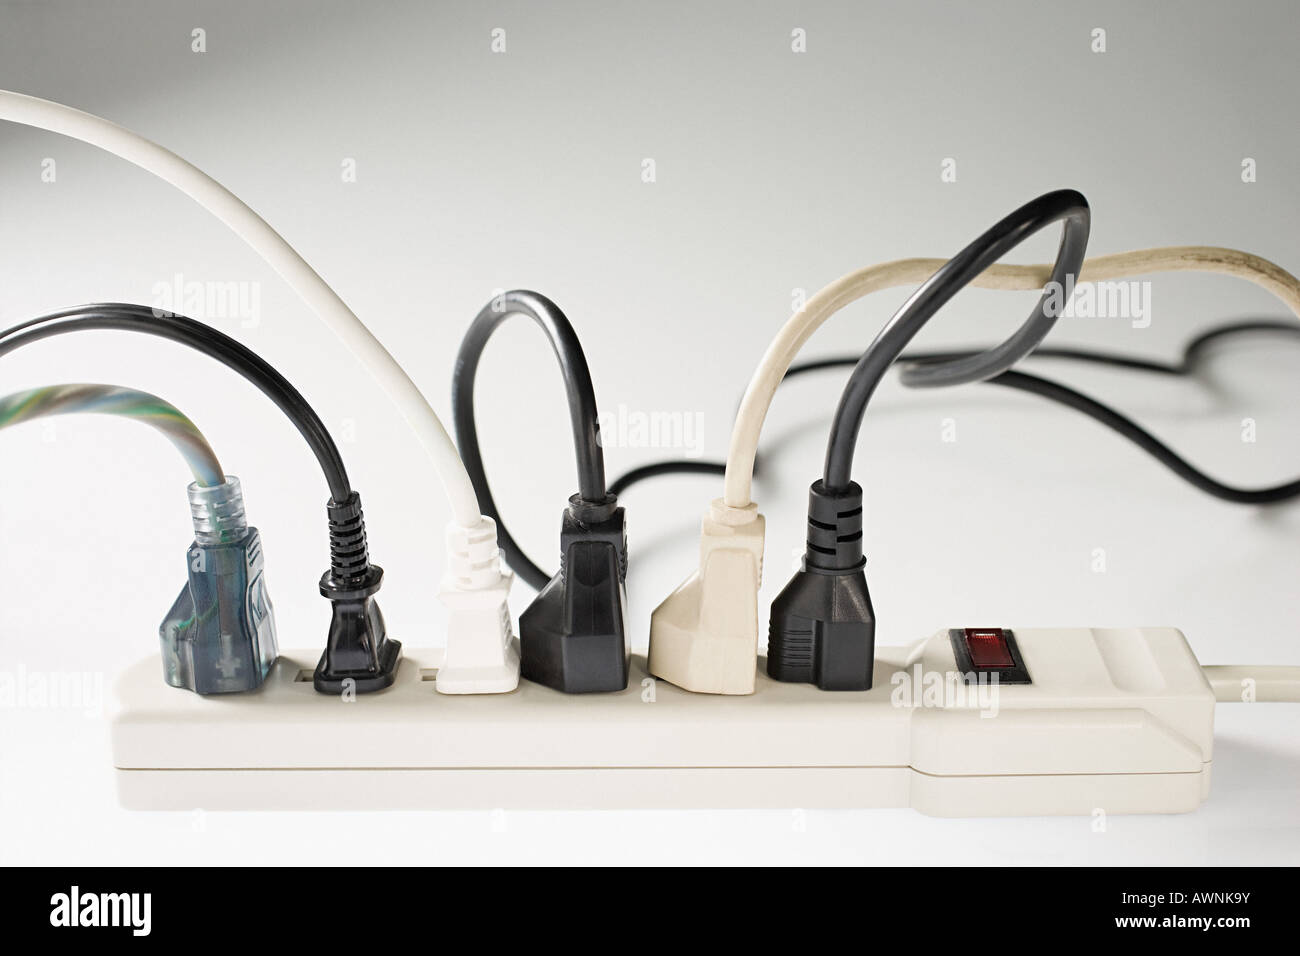 electrical plug x and y modern house wiring diagram socket stock photos